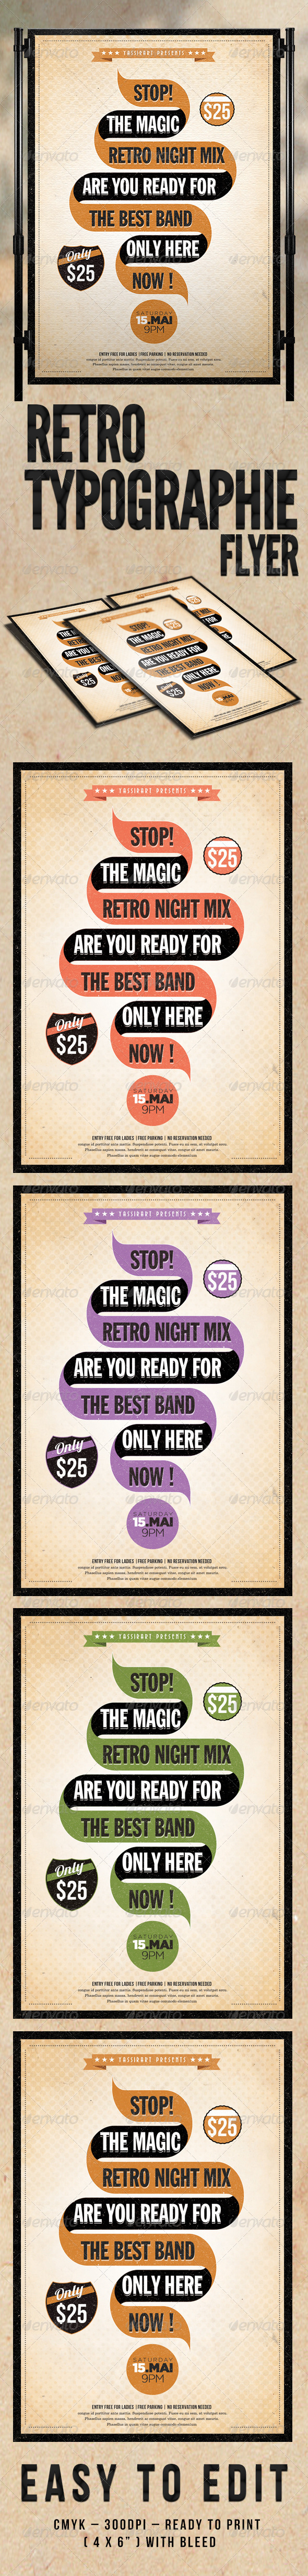 Retro Typographie Flyer Template - Concerts Events